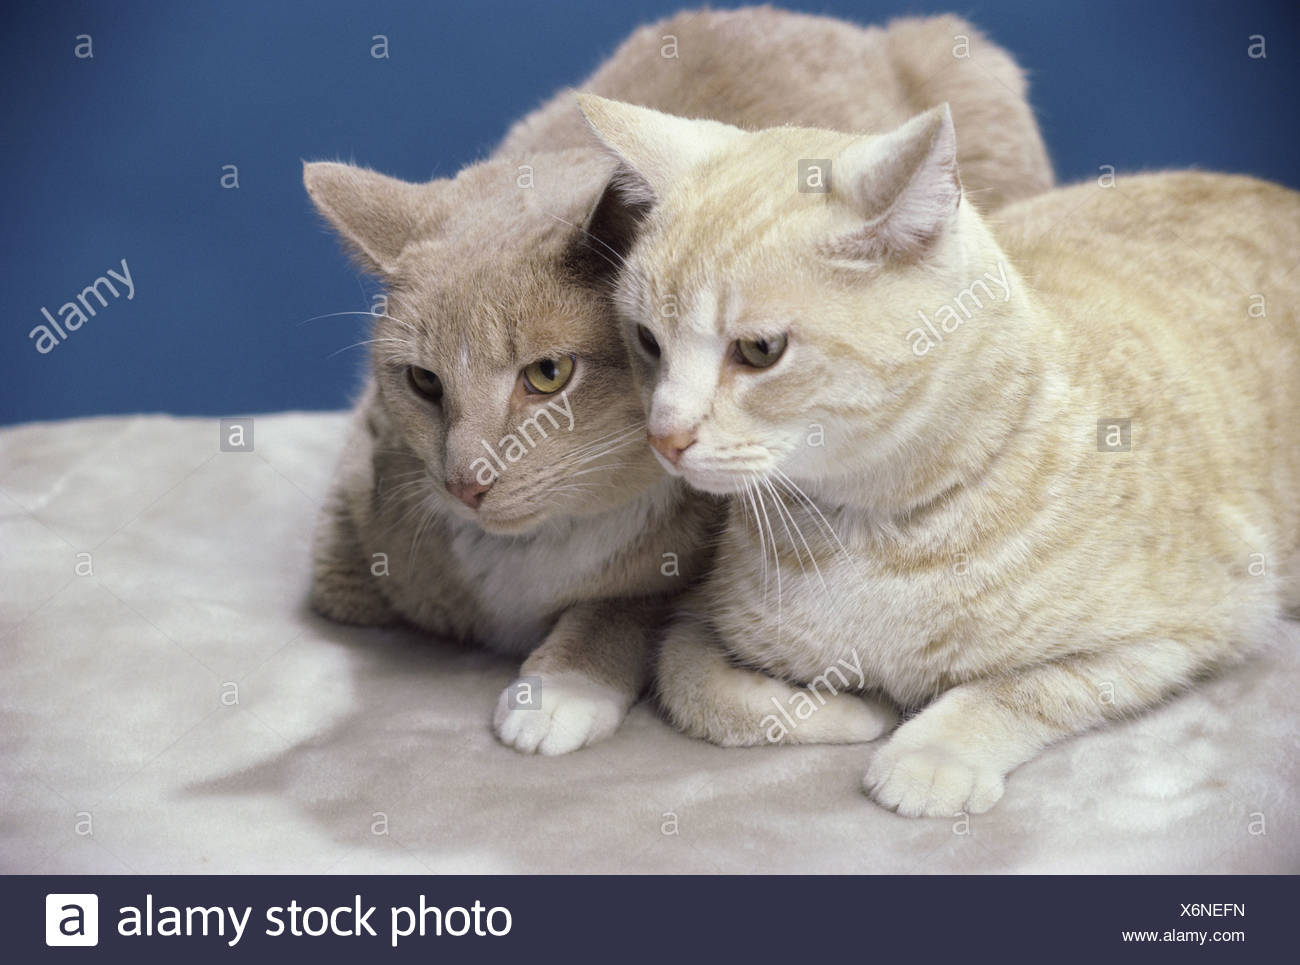 Two cats sitting together Stock Photo 279526233 , Alamy